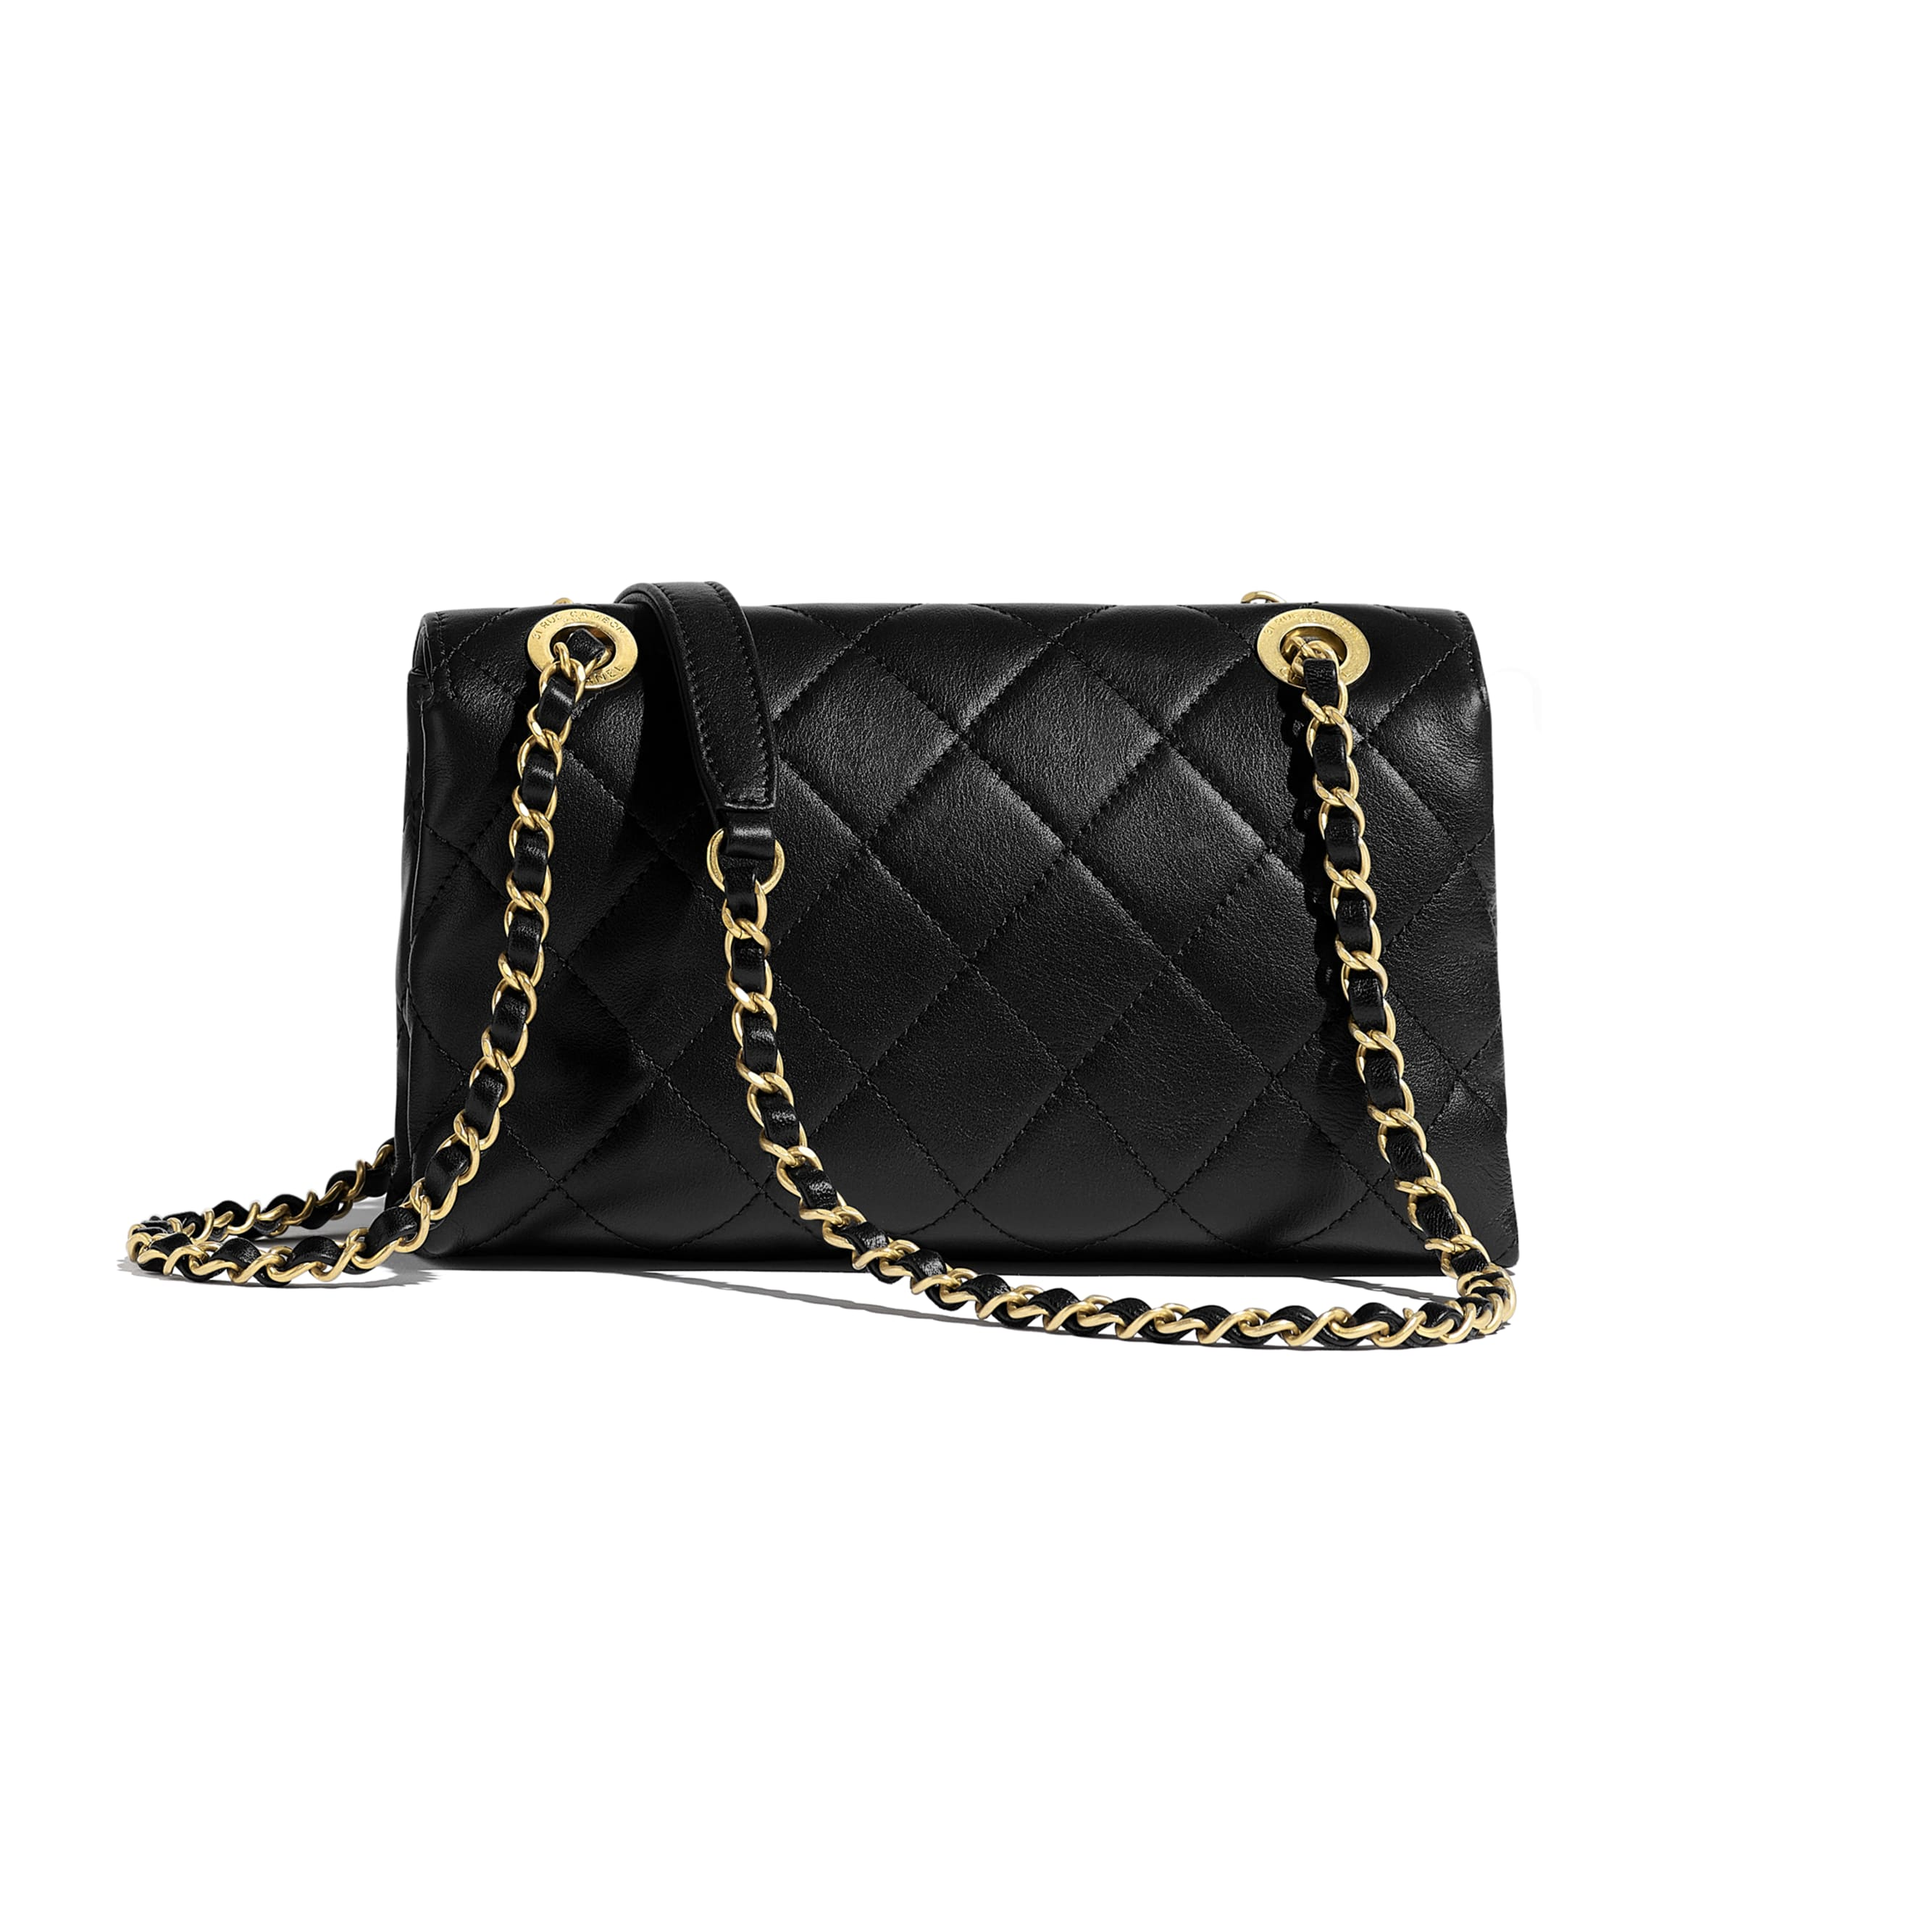 Small Flap Bag - Black - Calfskin & Gold-Tone Metal - Alternative view - see standard sized version